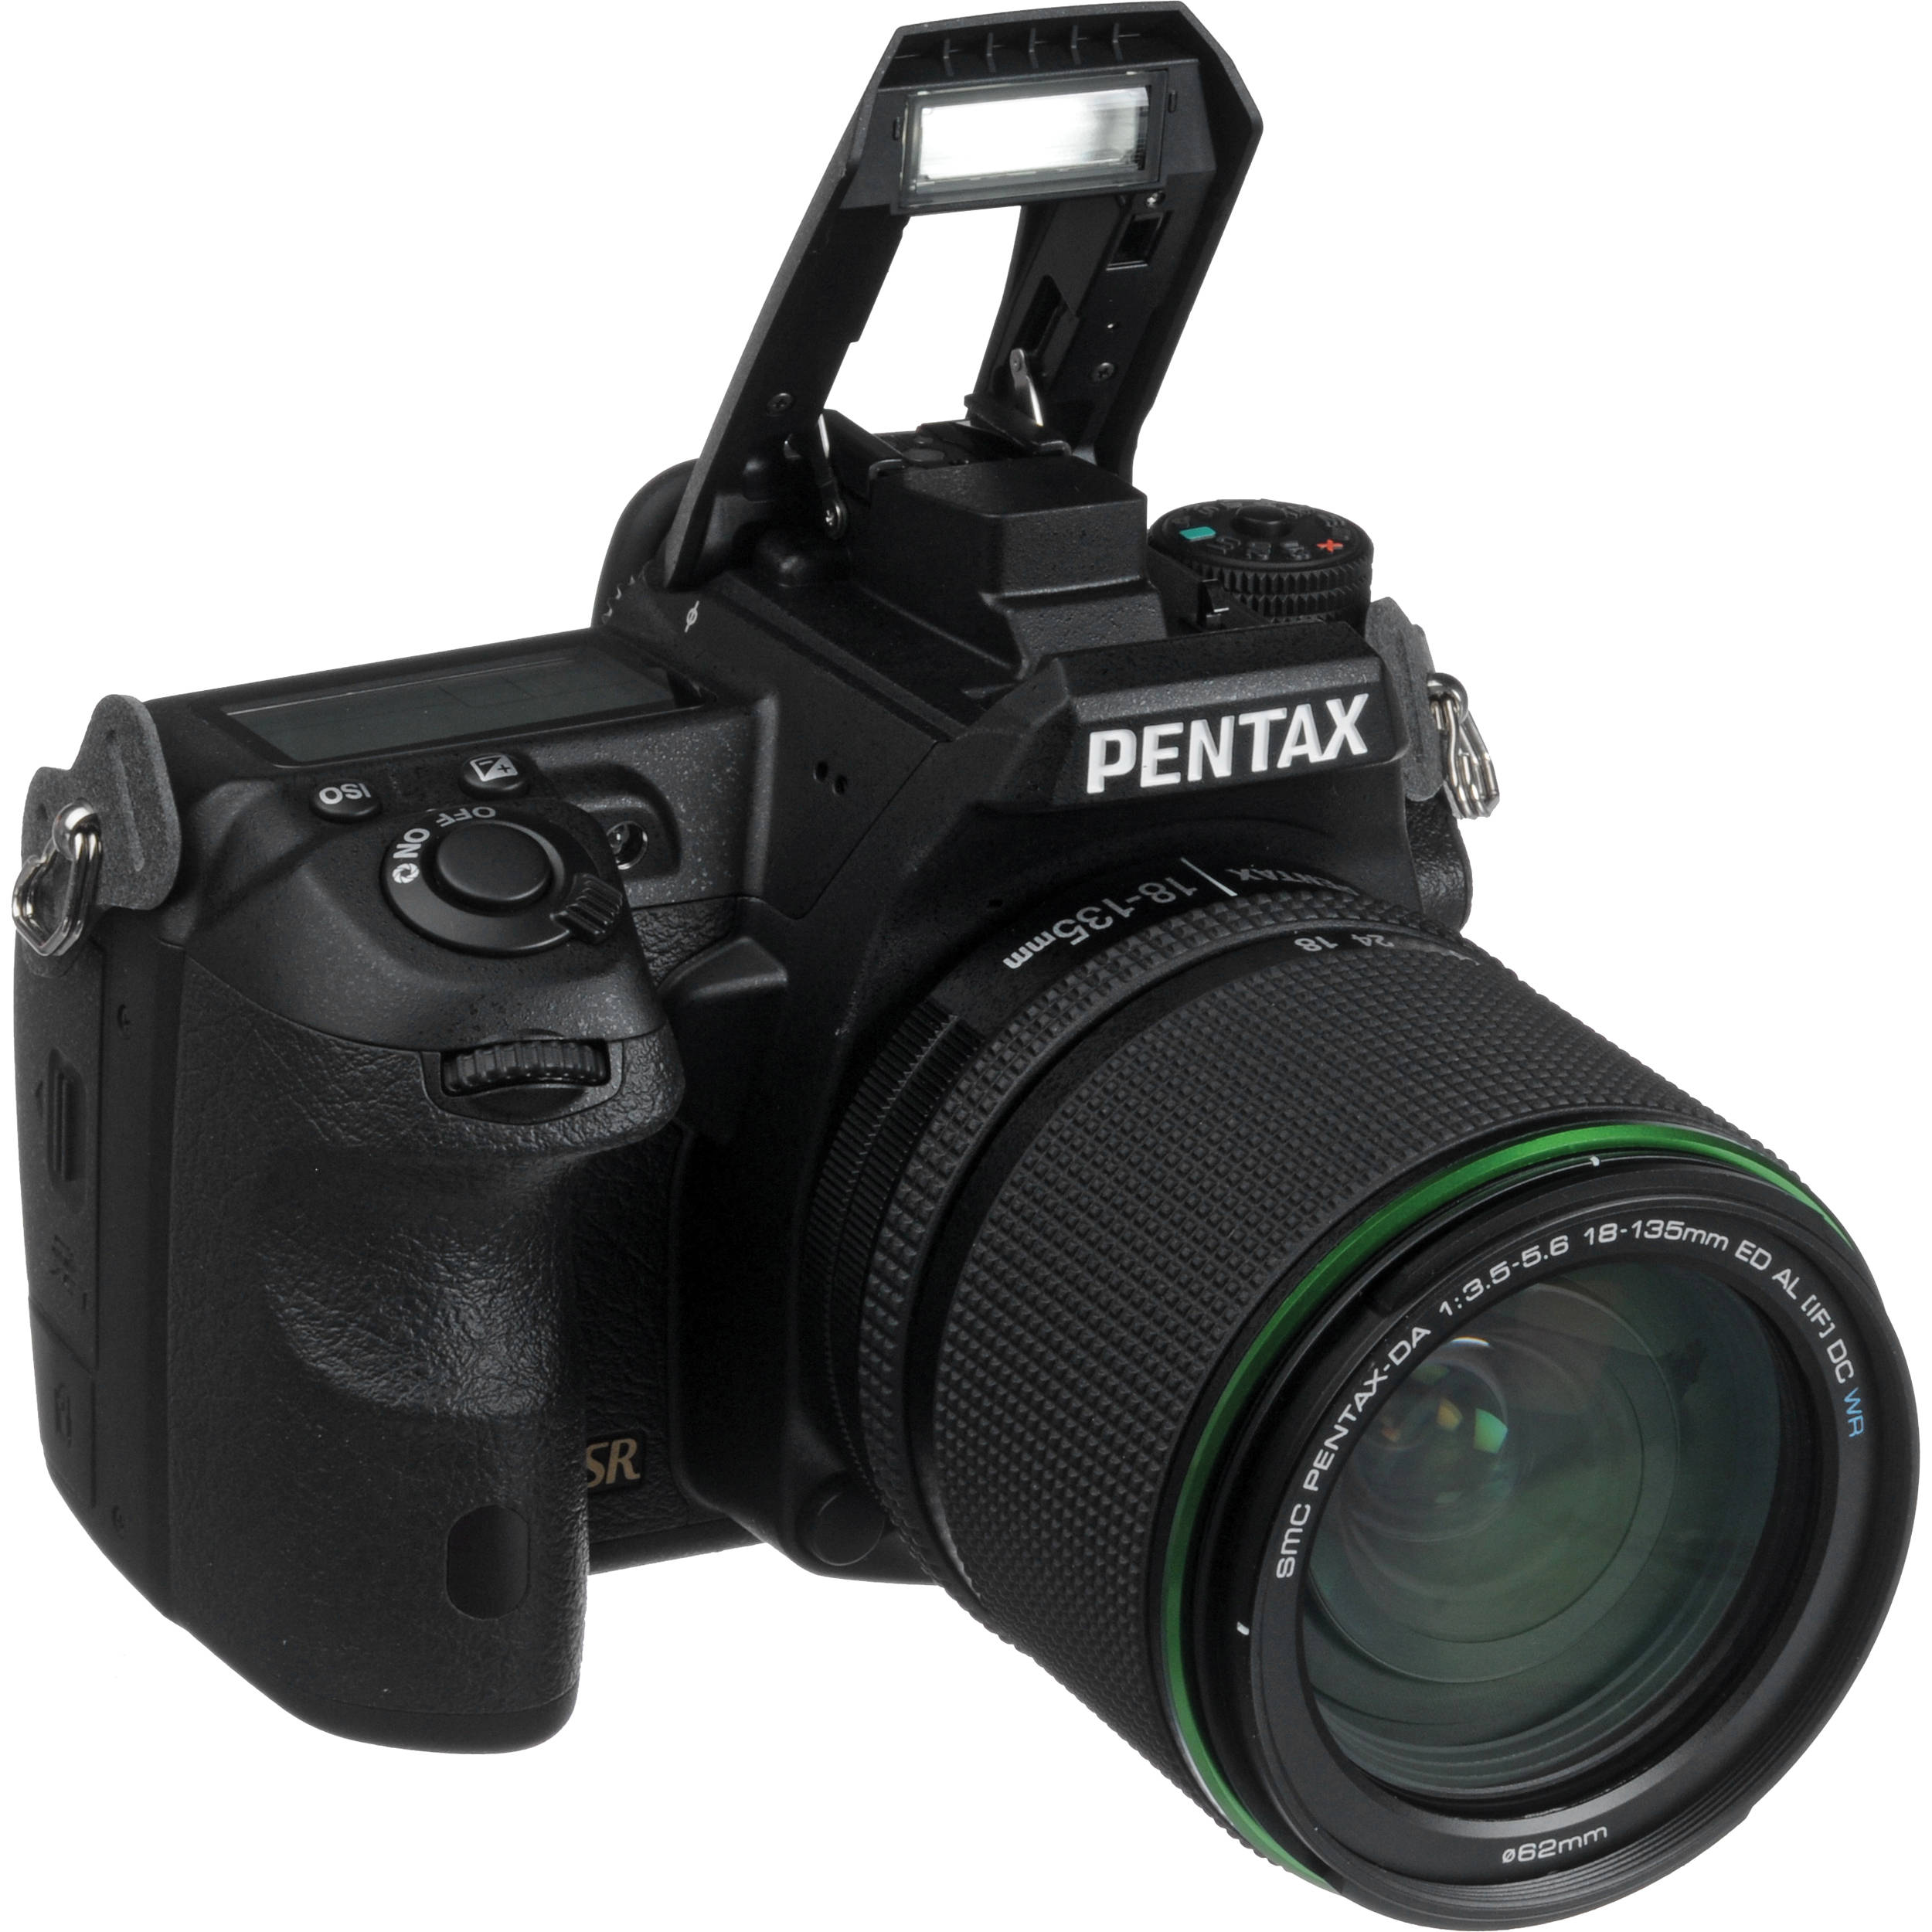 Camera Latest Pentax Dslr Camera recommended cameras for newborn and baby photography bh explora pentax k 3 dslr camera with 18 135mm lens